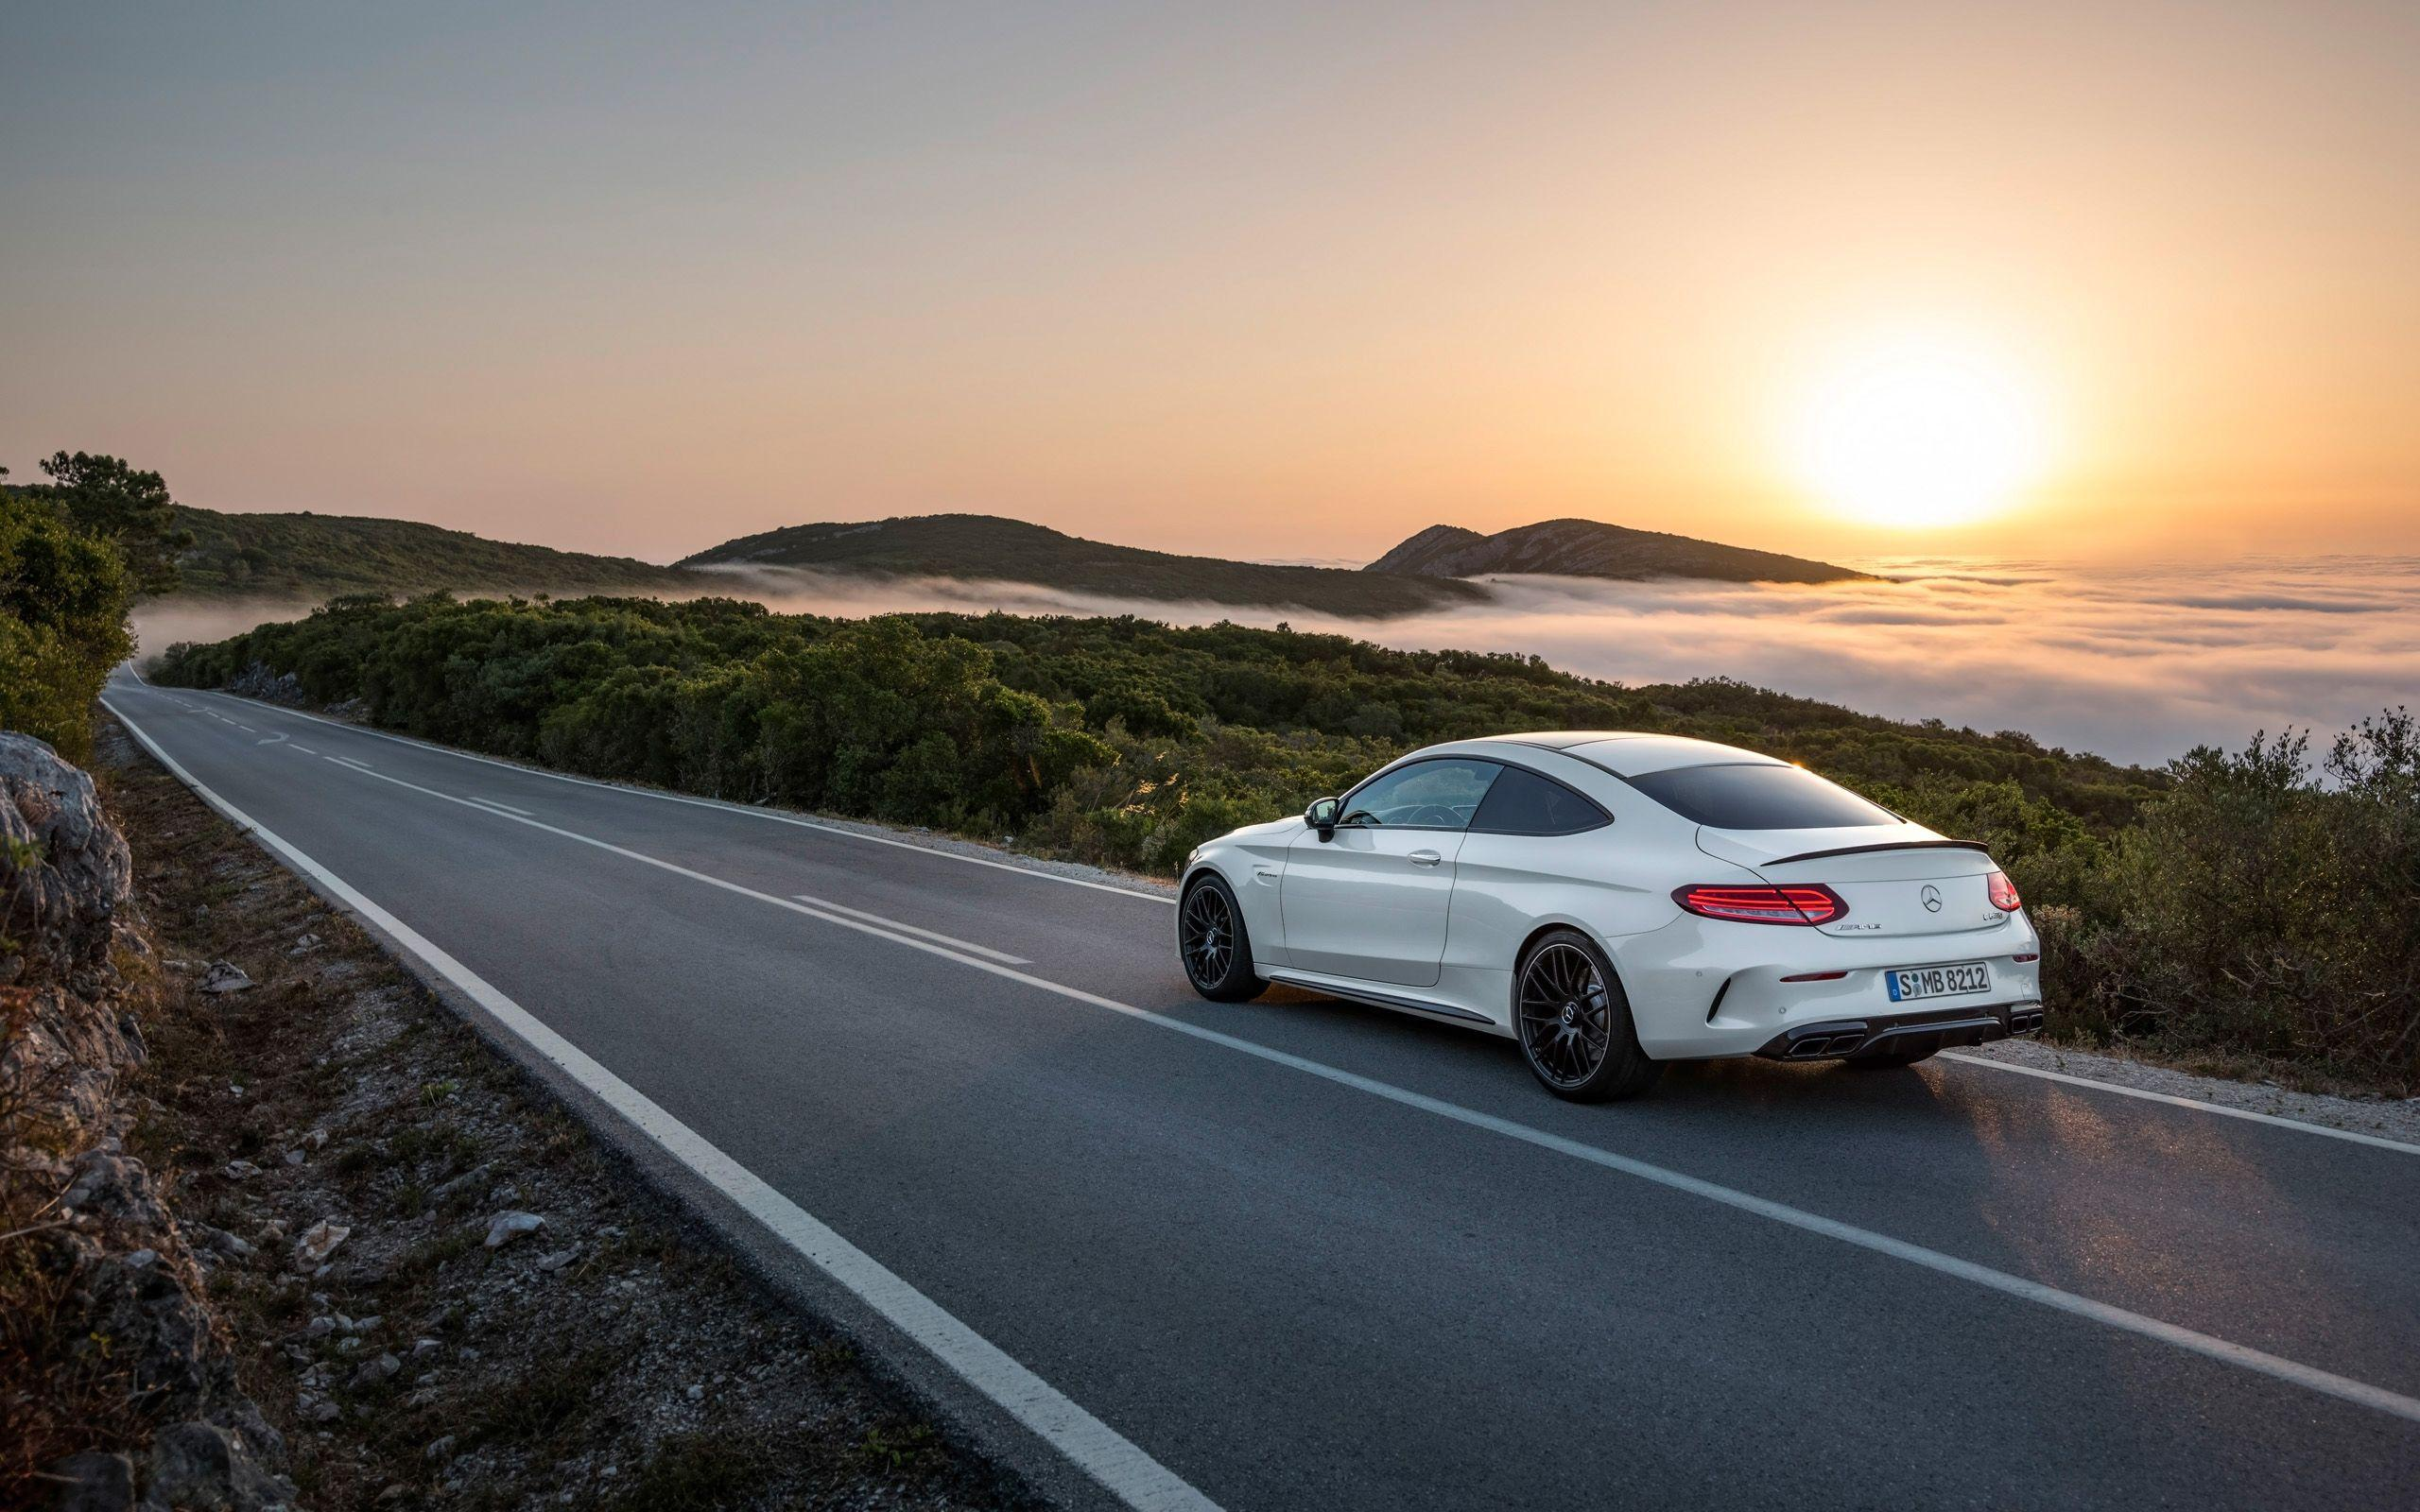 2016 Mercedes AMG C63 S Coupe 2 Wallpaper | HD Car Wallpapers